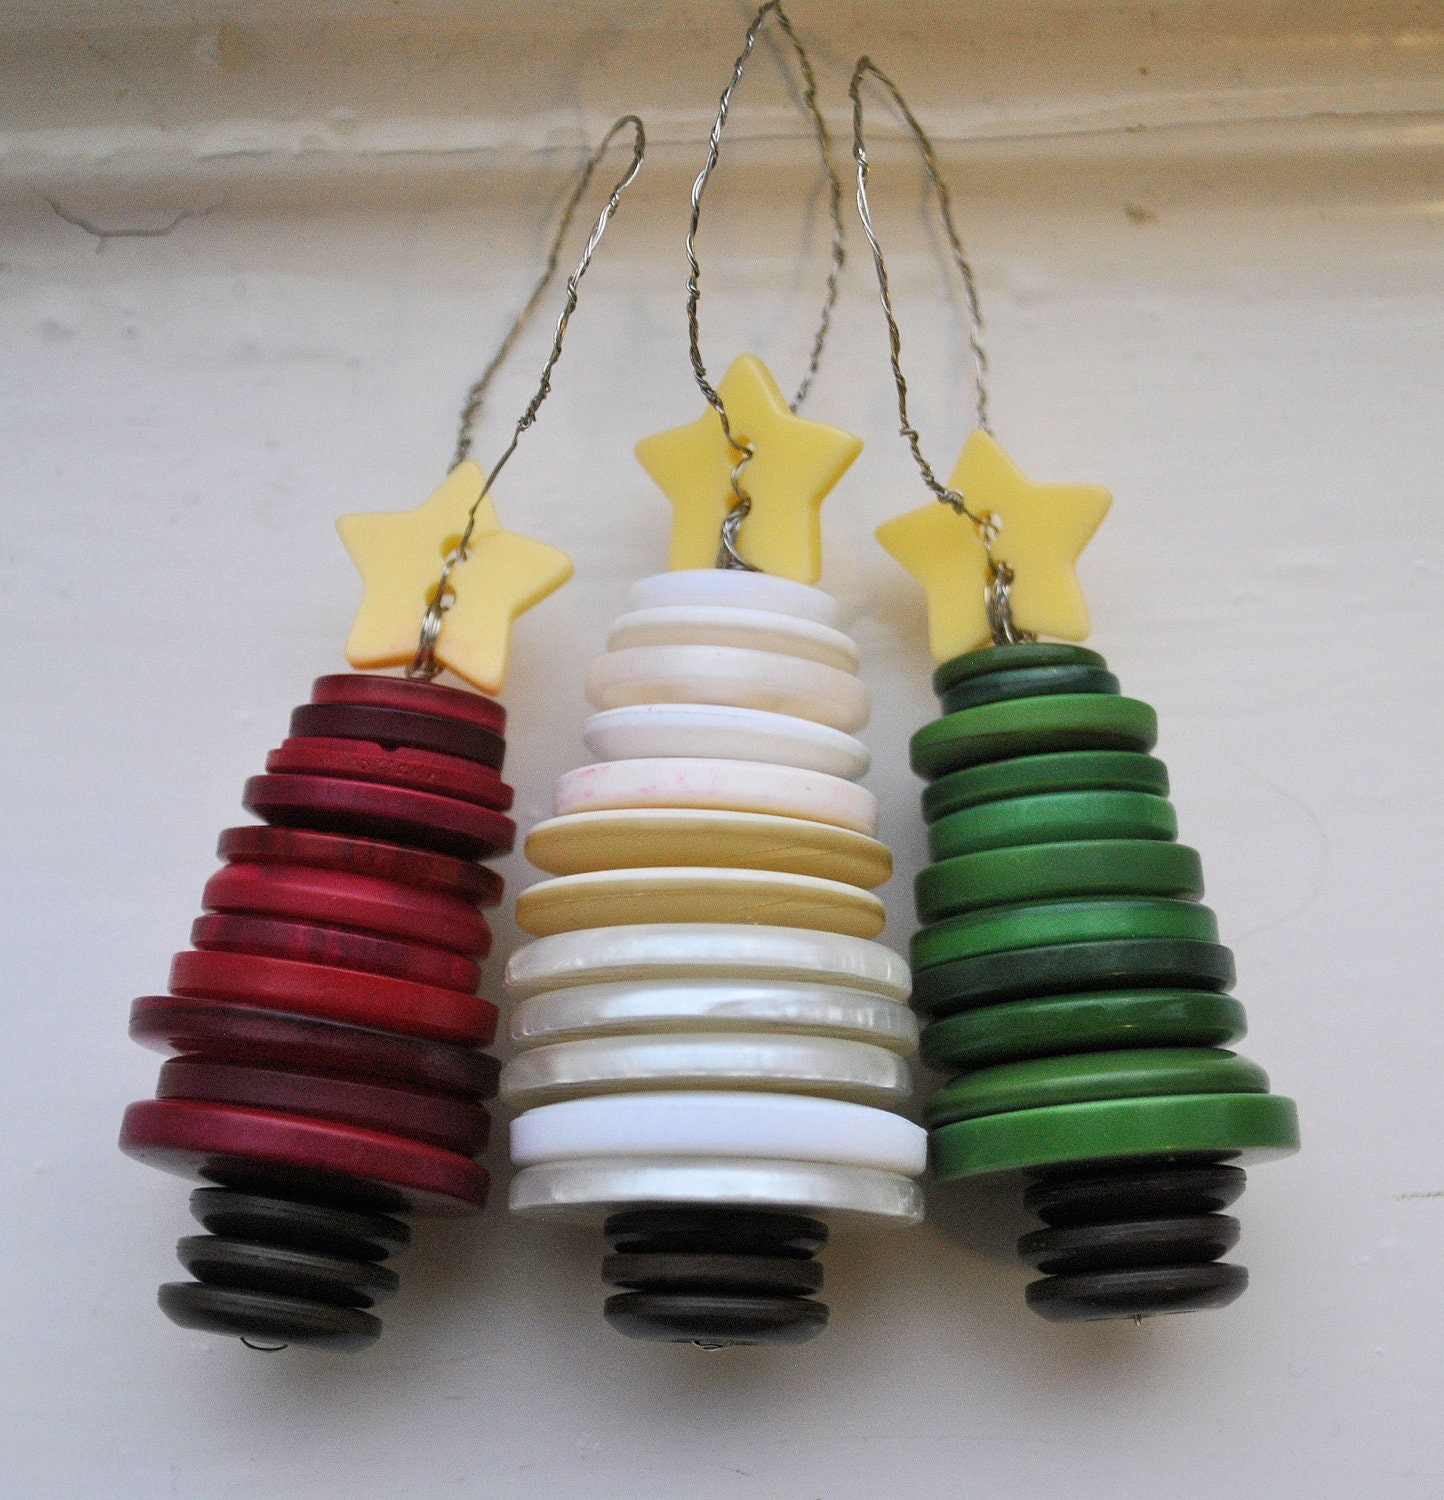 Recycled Plastic Christmas Tree: Recycled Button Christmas Tree Ornaments